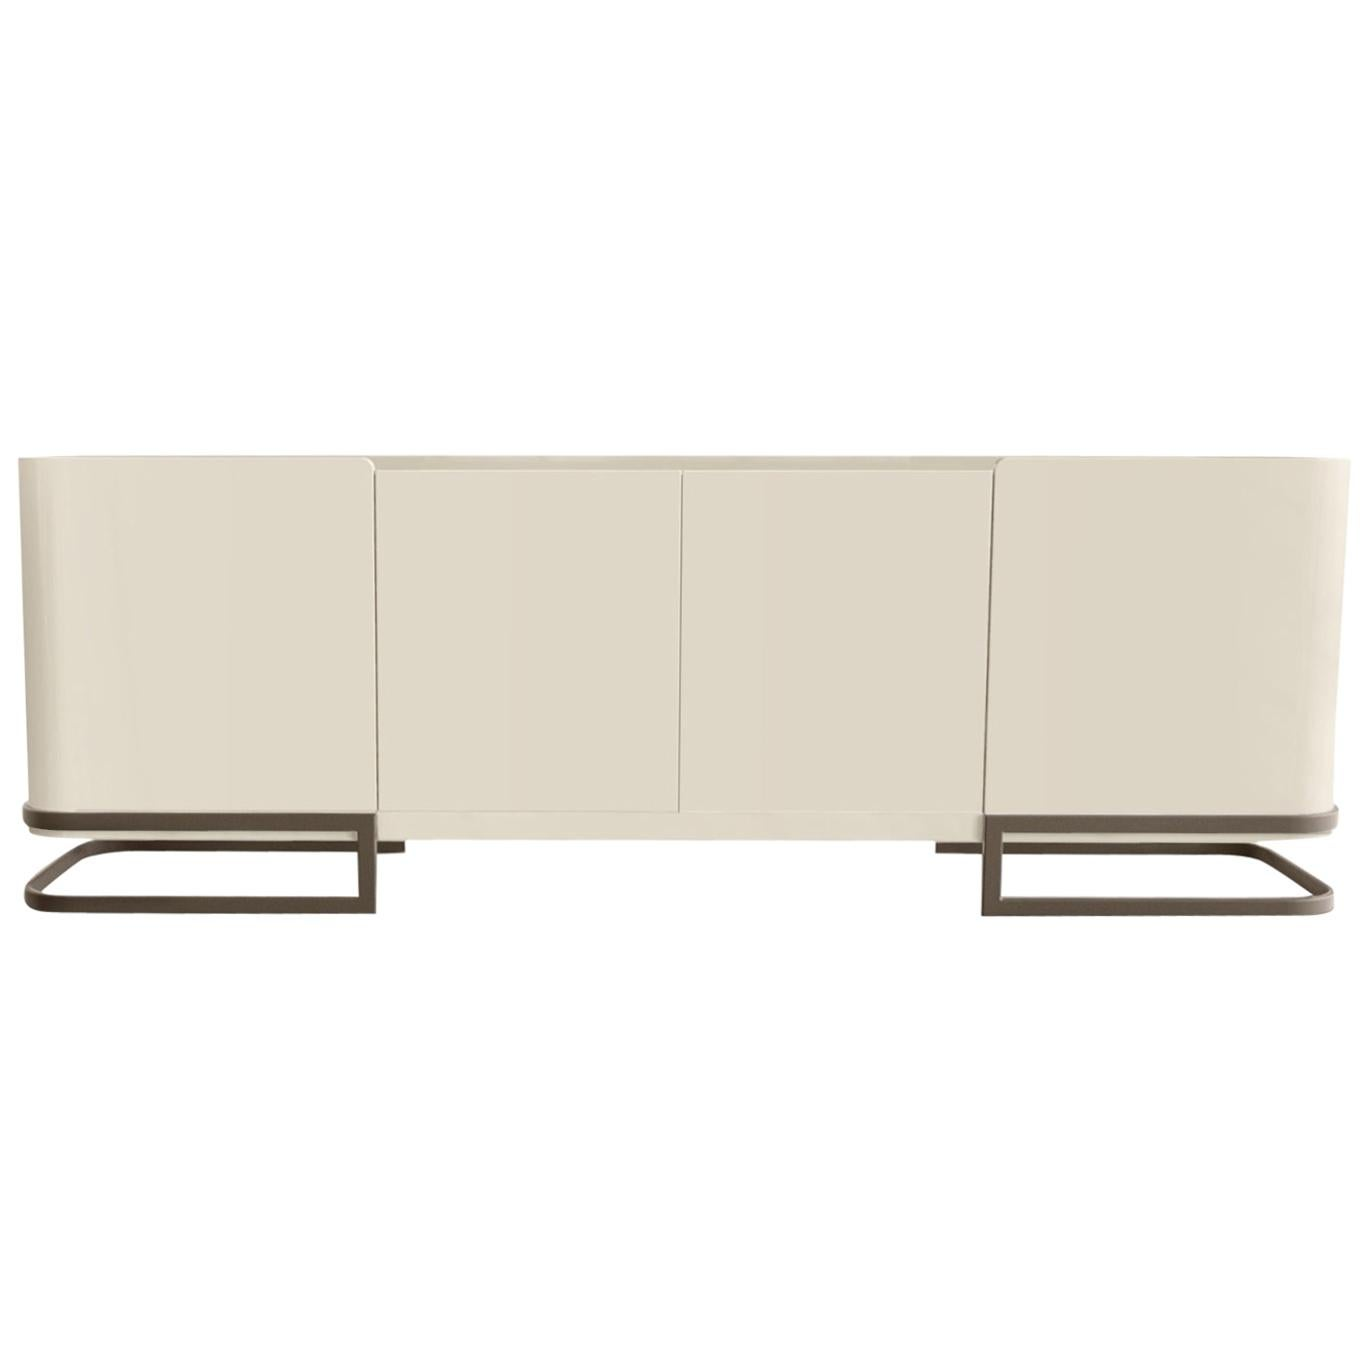 Latte Sideboard Lacquered in High Gloss Cream